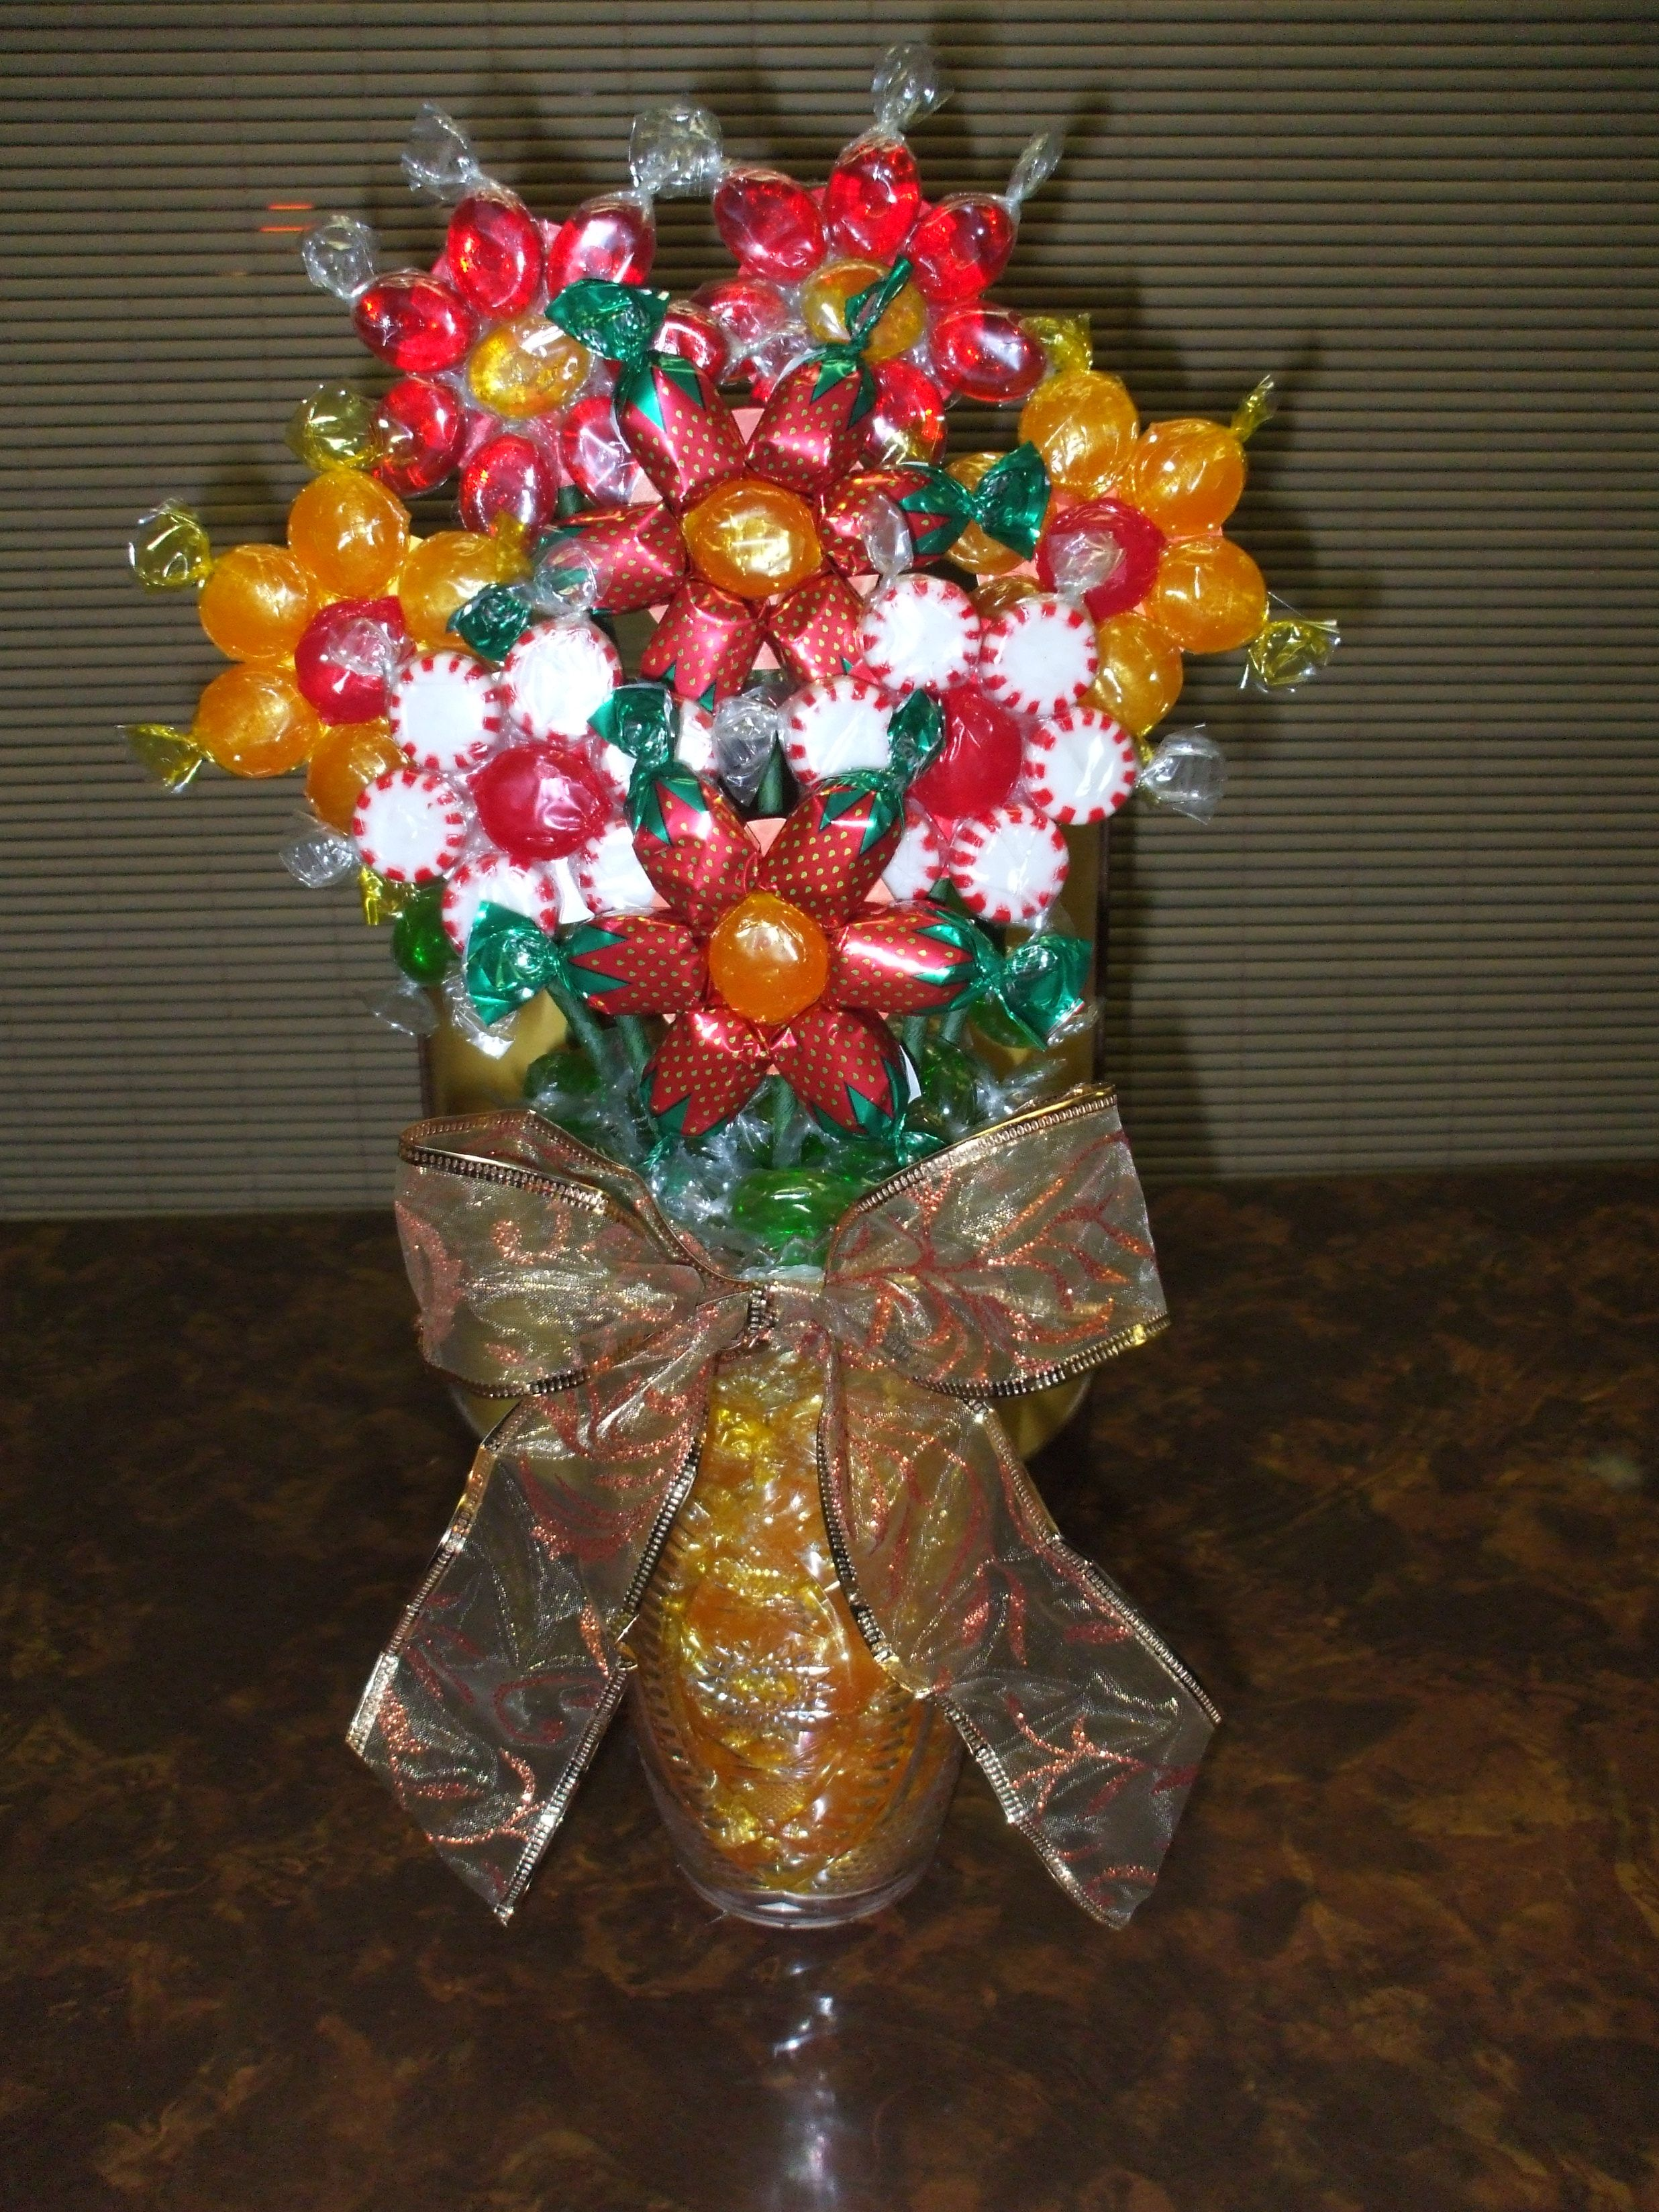 Candy flower bouquet i made lisa things i made pinterest candy flower bouquet i made izmirmasajfo Choice Image